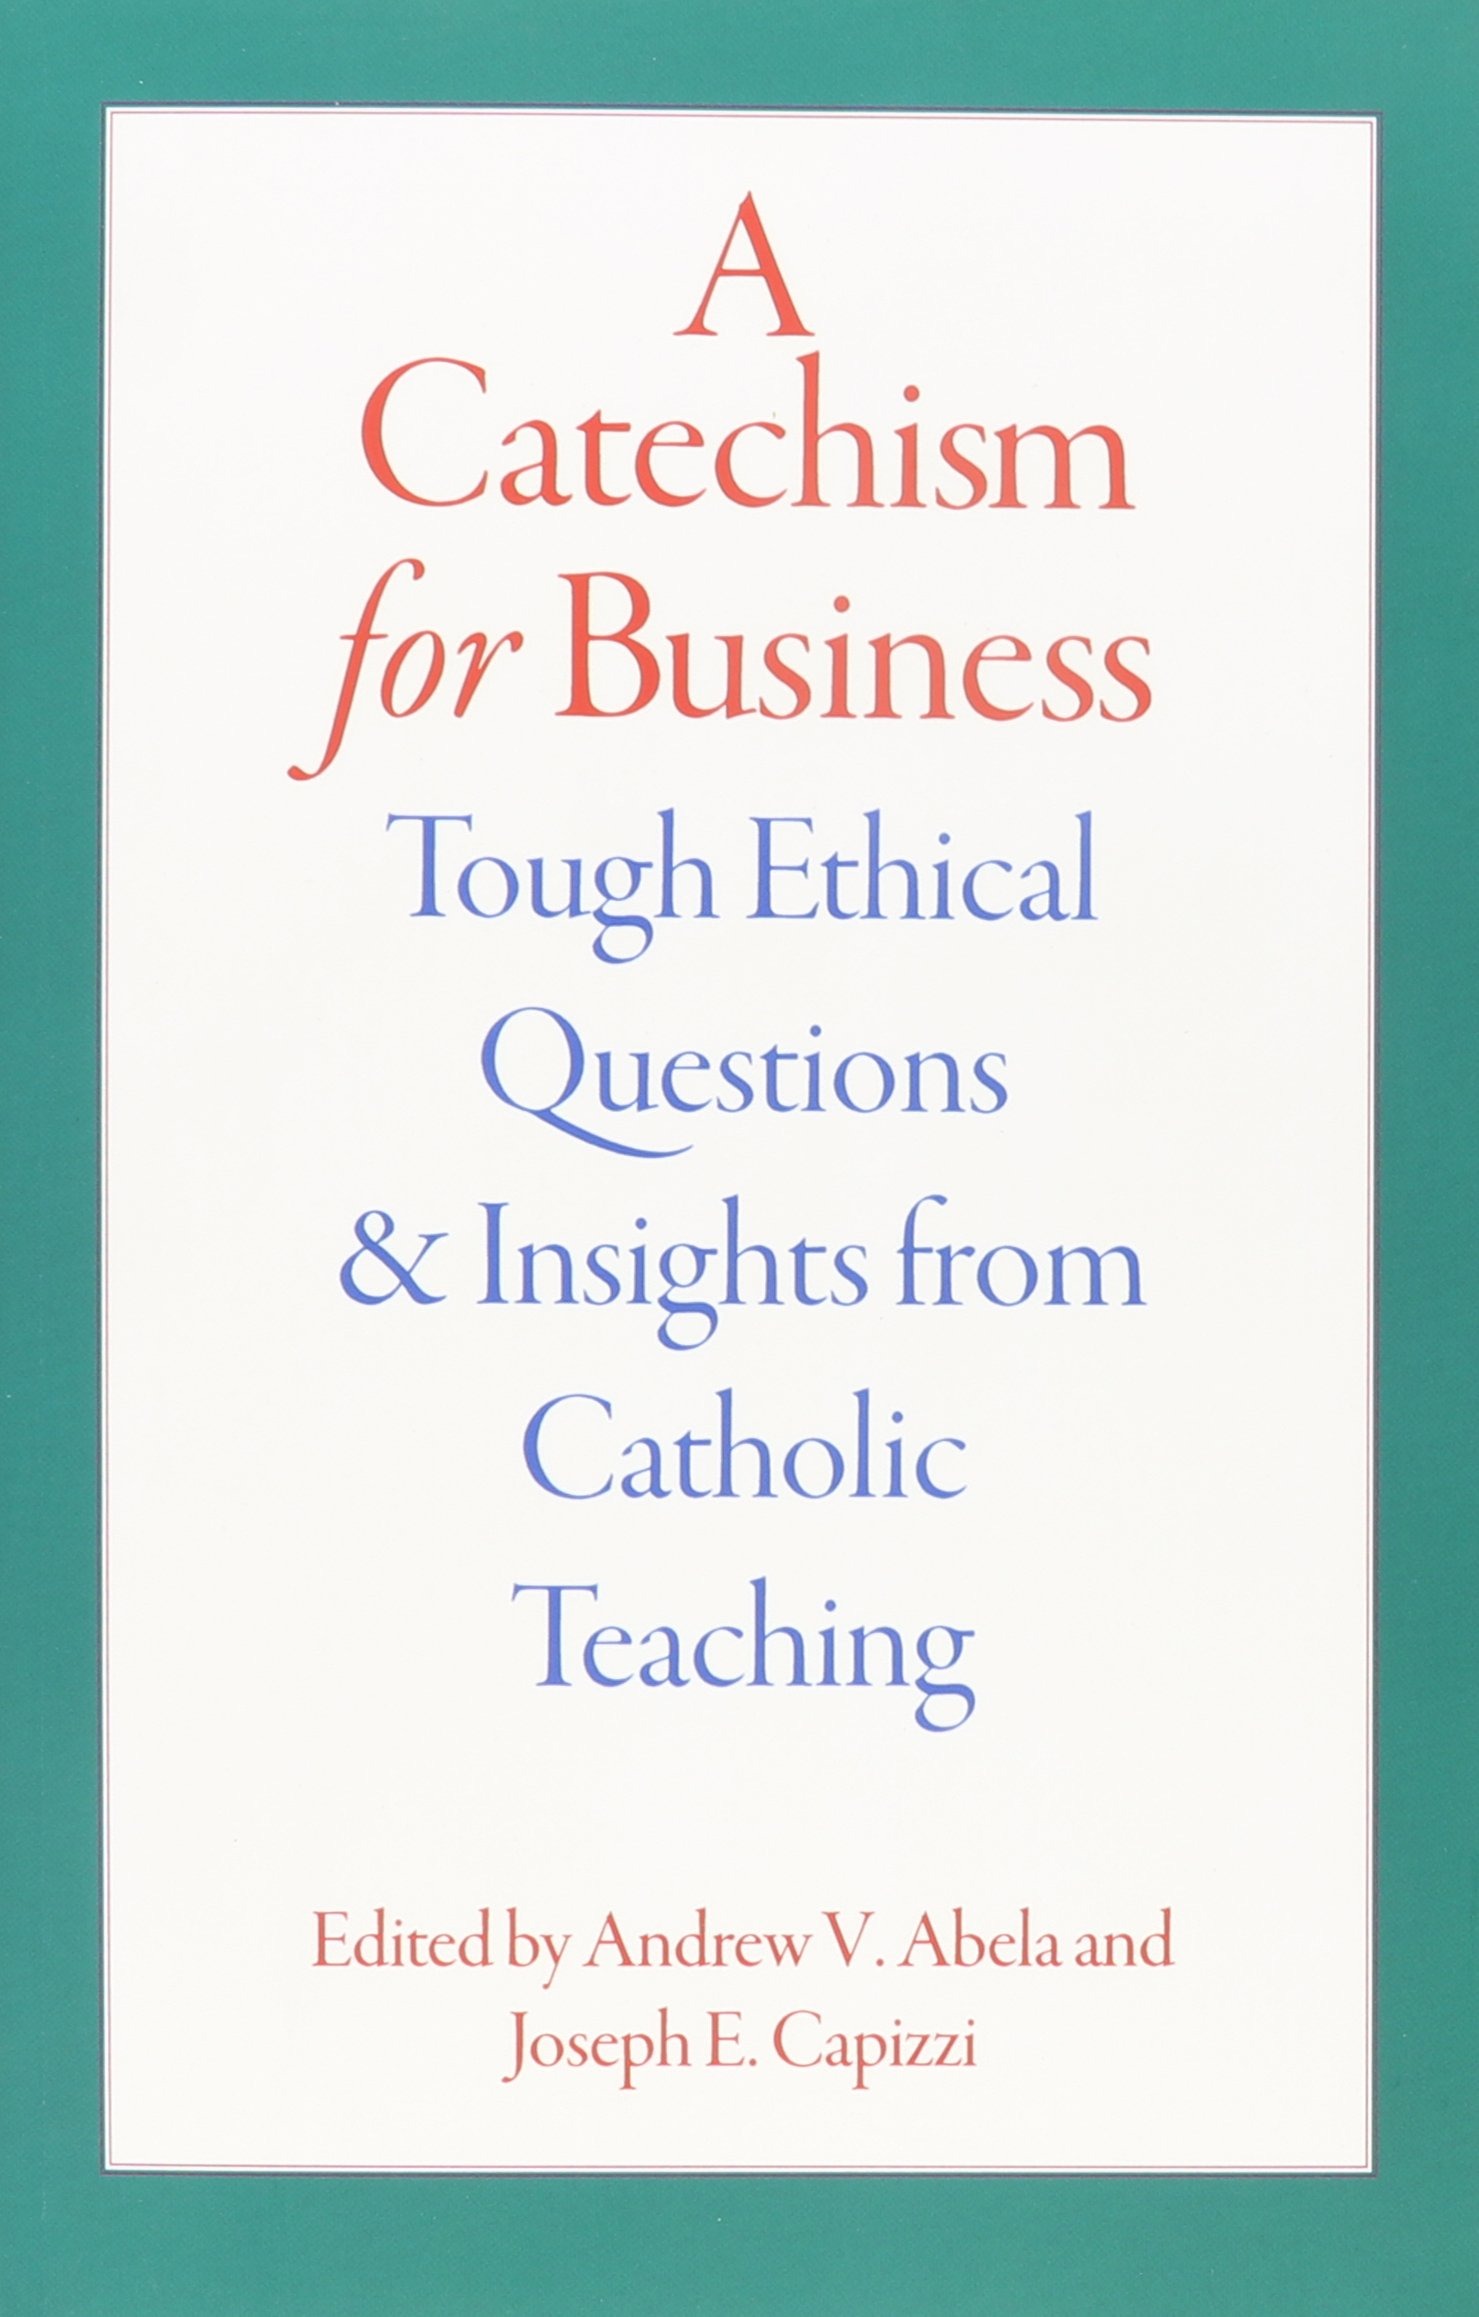 A Catechism for Business: Tough Ethical Questions and Insights from Catholic  Teaching: Abela: 9780813225852: Amazon.com: Books